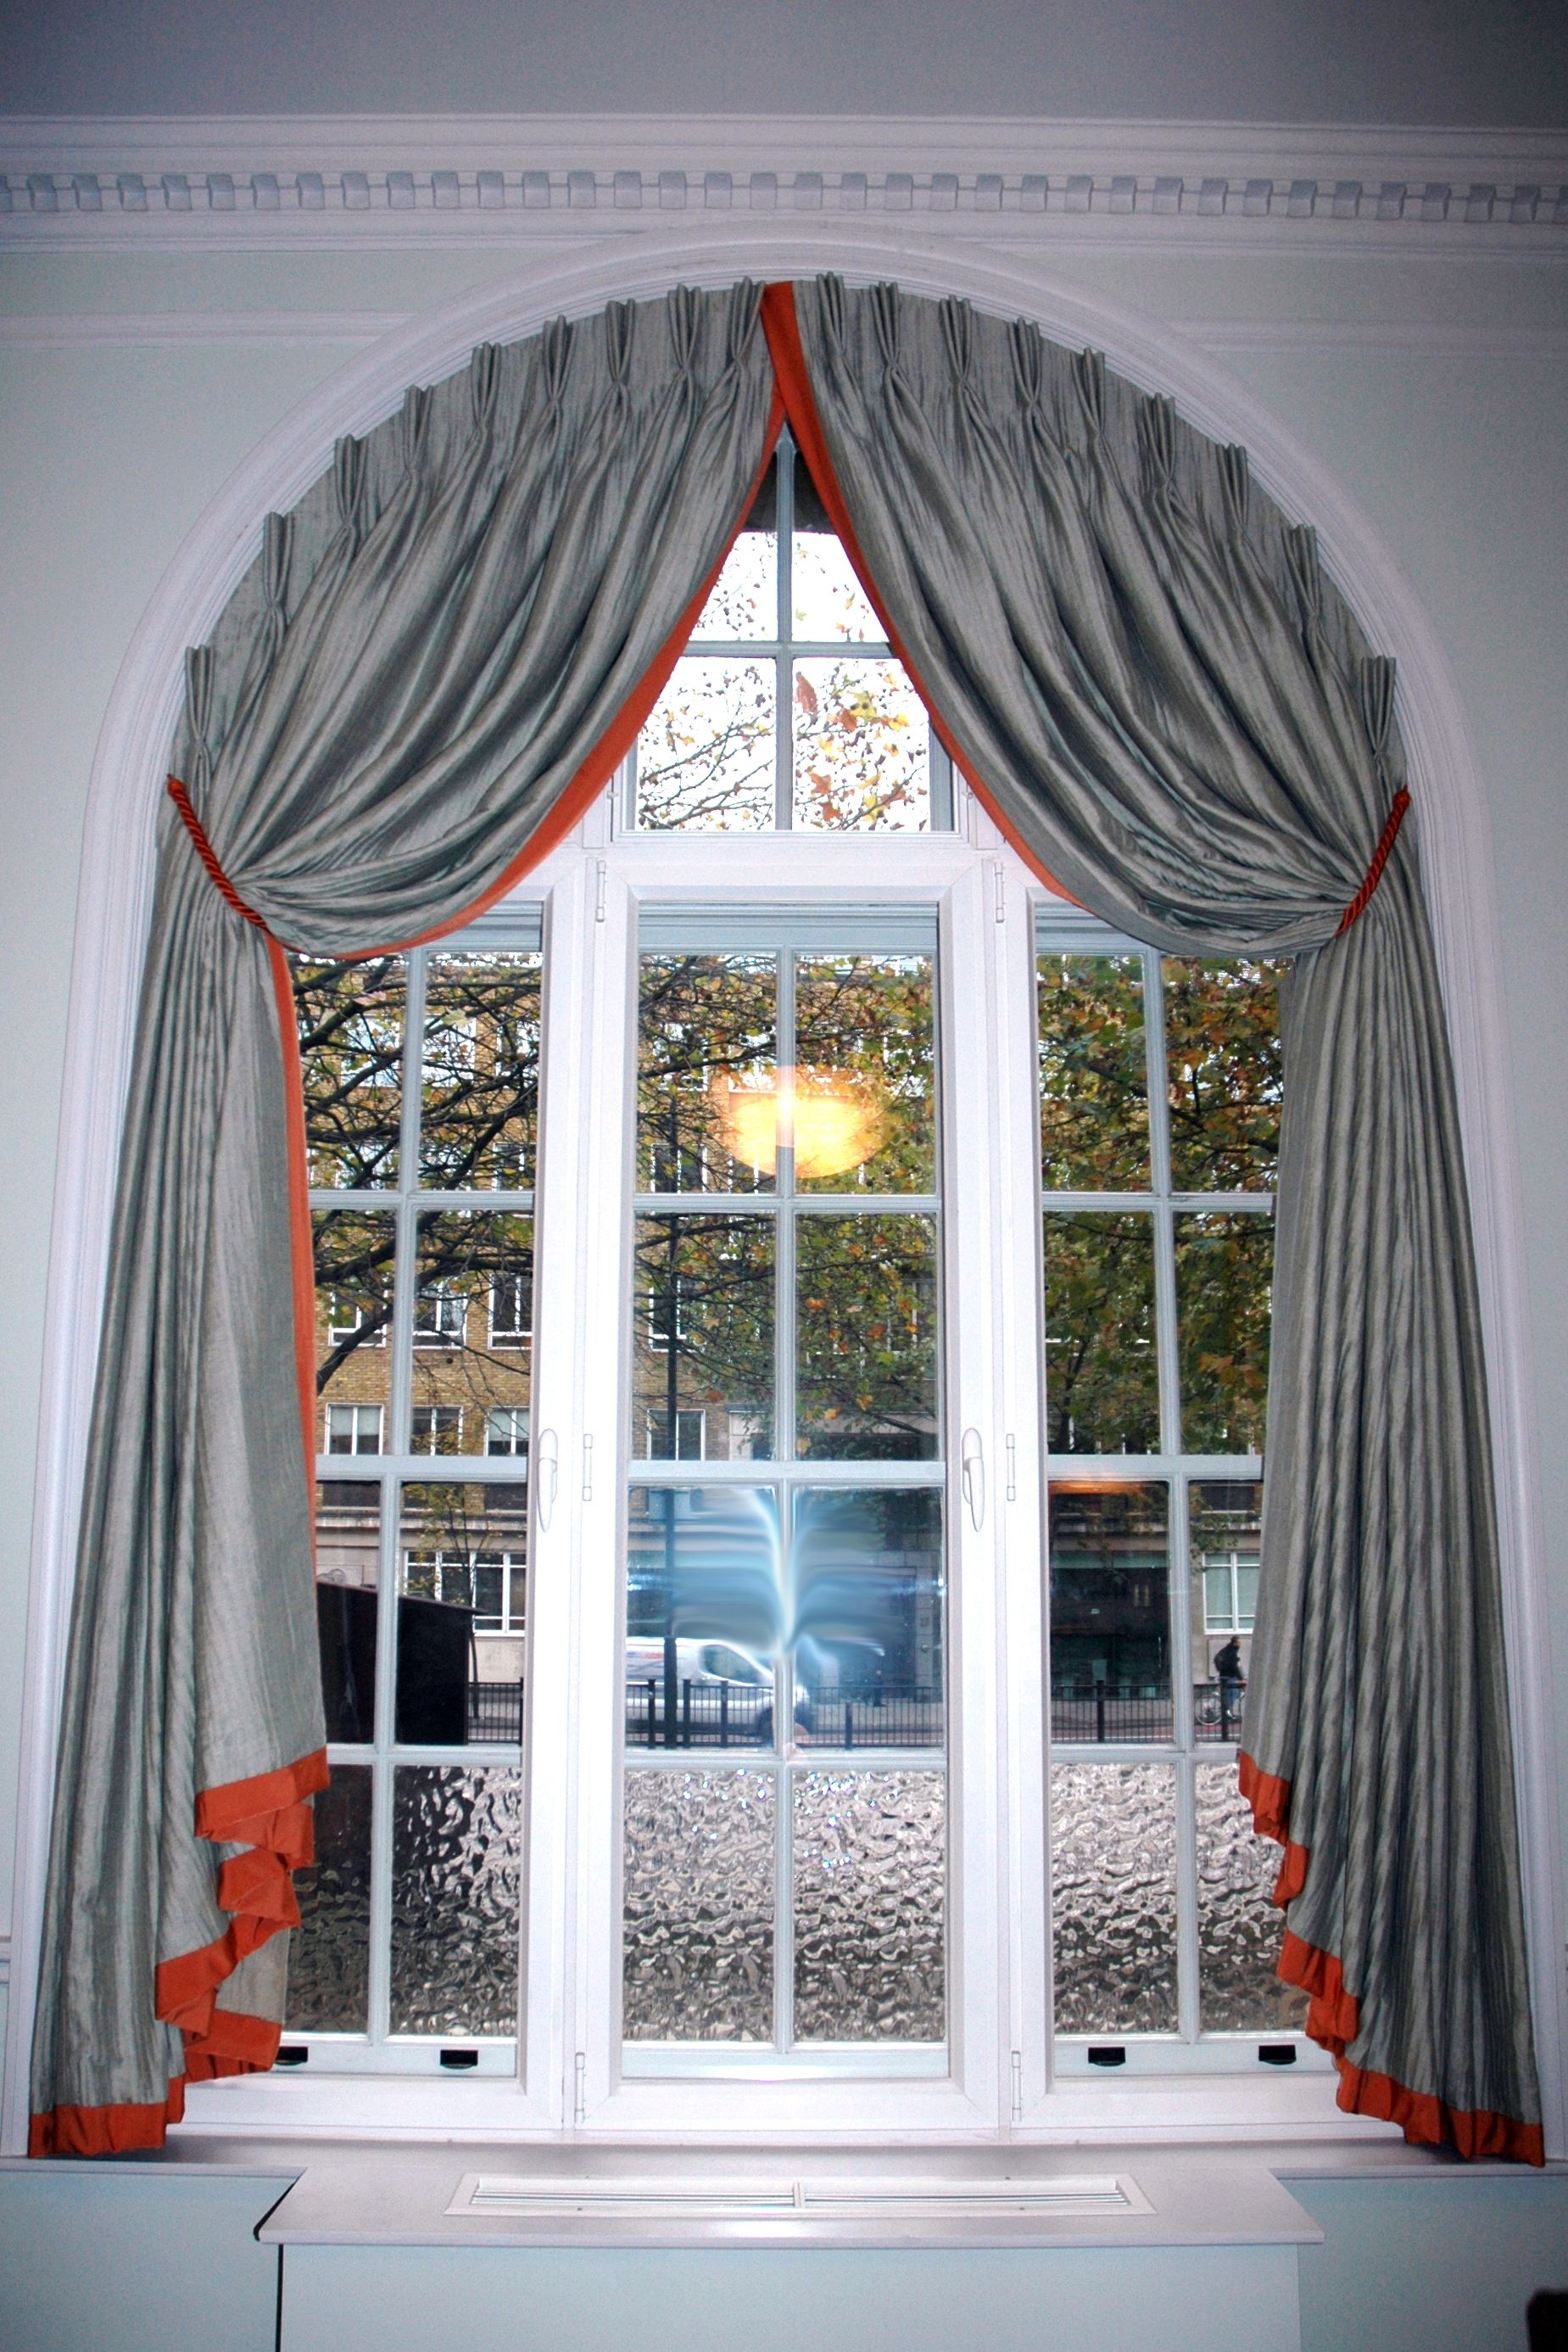 How To Hang Curtains On A Circle Top Half Window Curtains Window